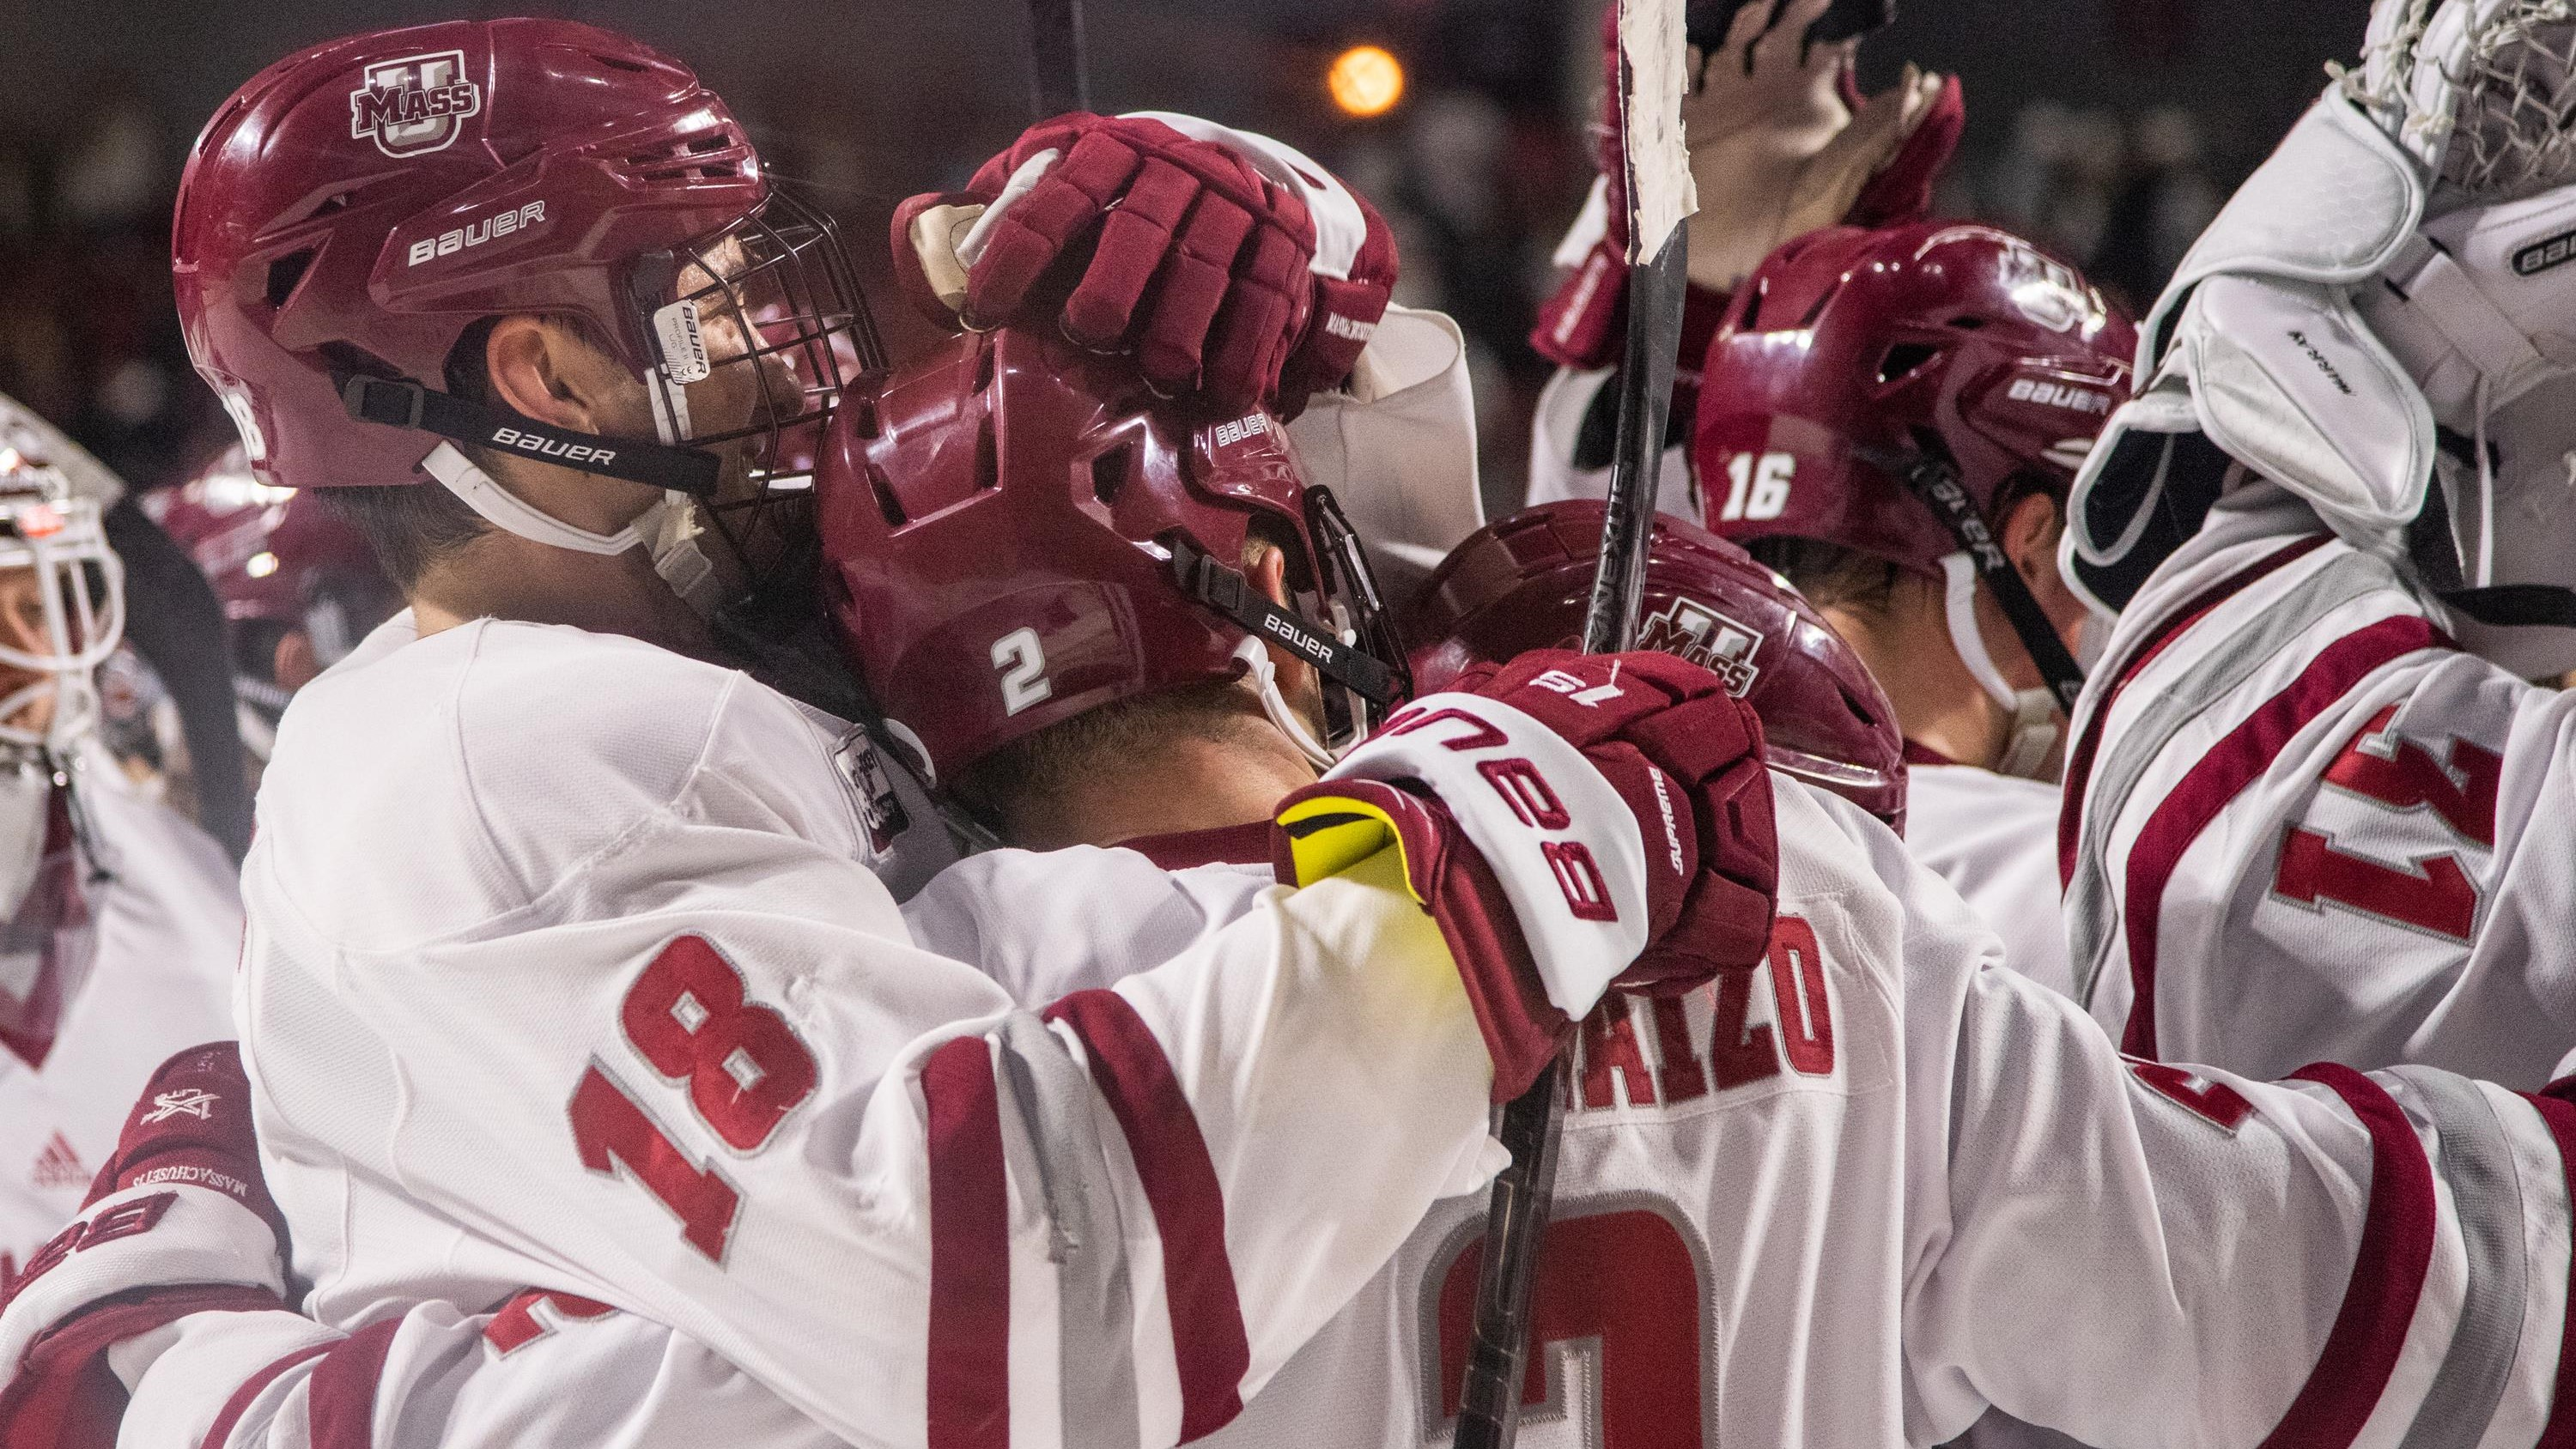 2 Hockey Set To Host Vermont For Two-Game Set - University of ... c2252cd54